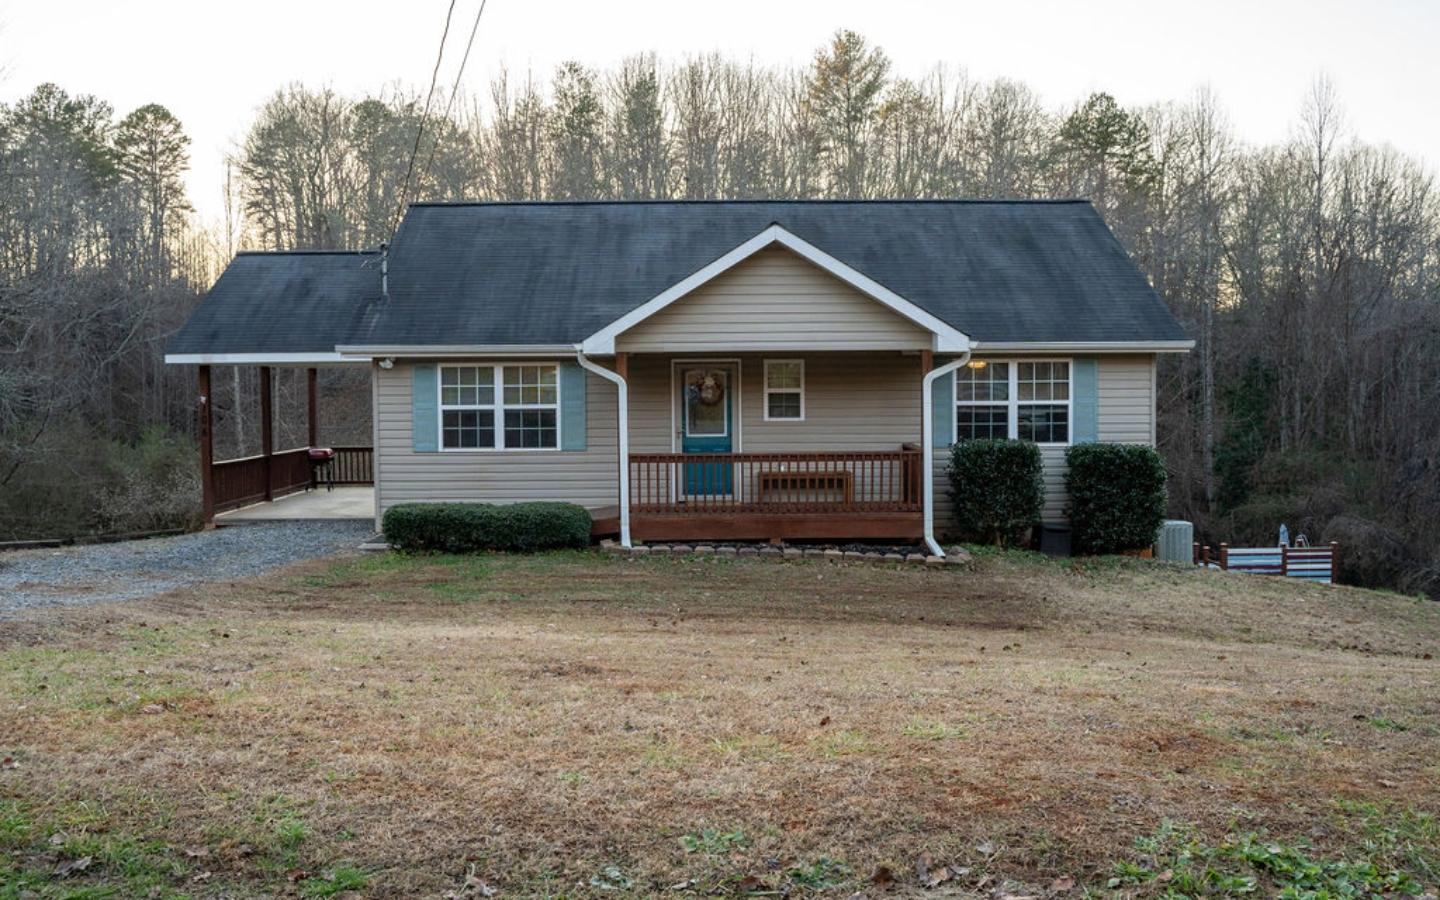 Great house, very clean, close to town, Garden spot out back, above ground pool with deck. Garage in Basement rest is finished out living space with bonus room & bath. More Photos to come.